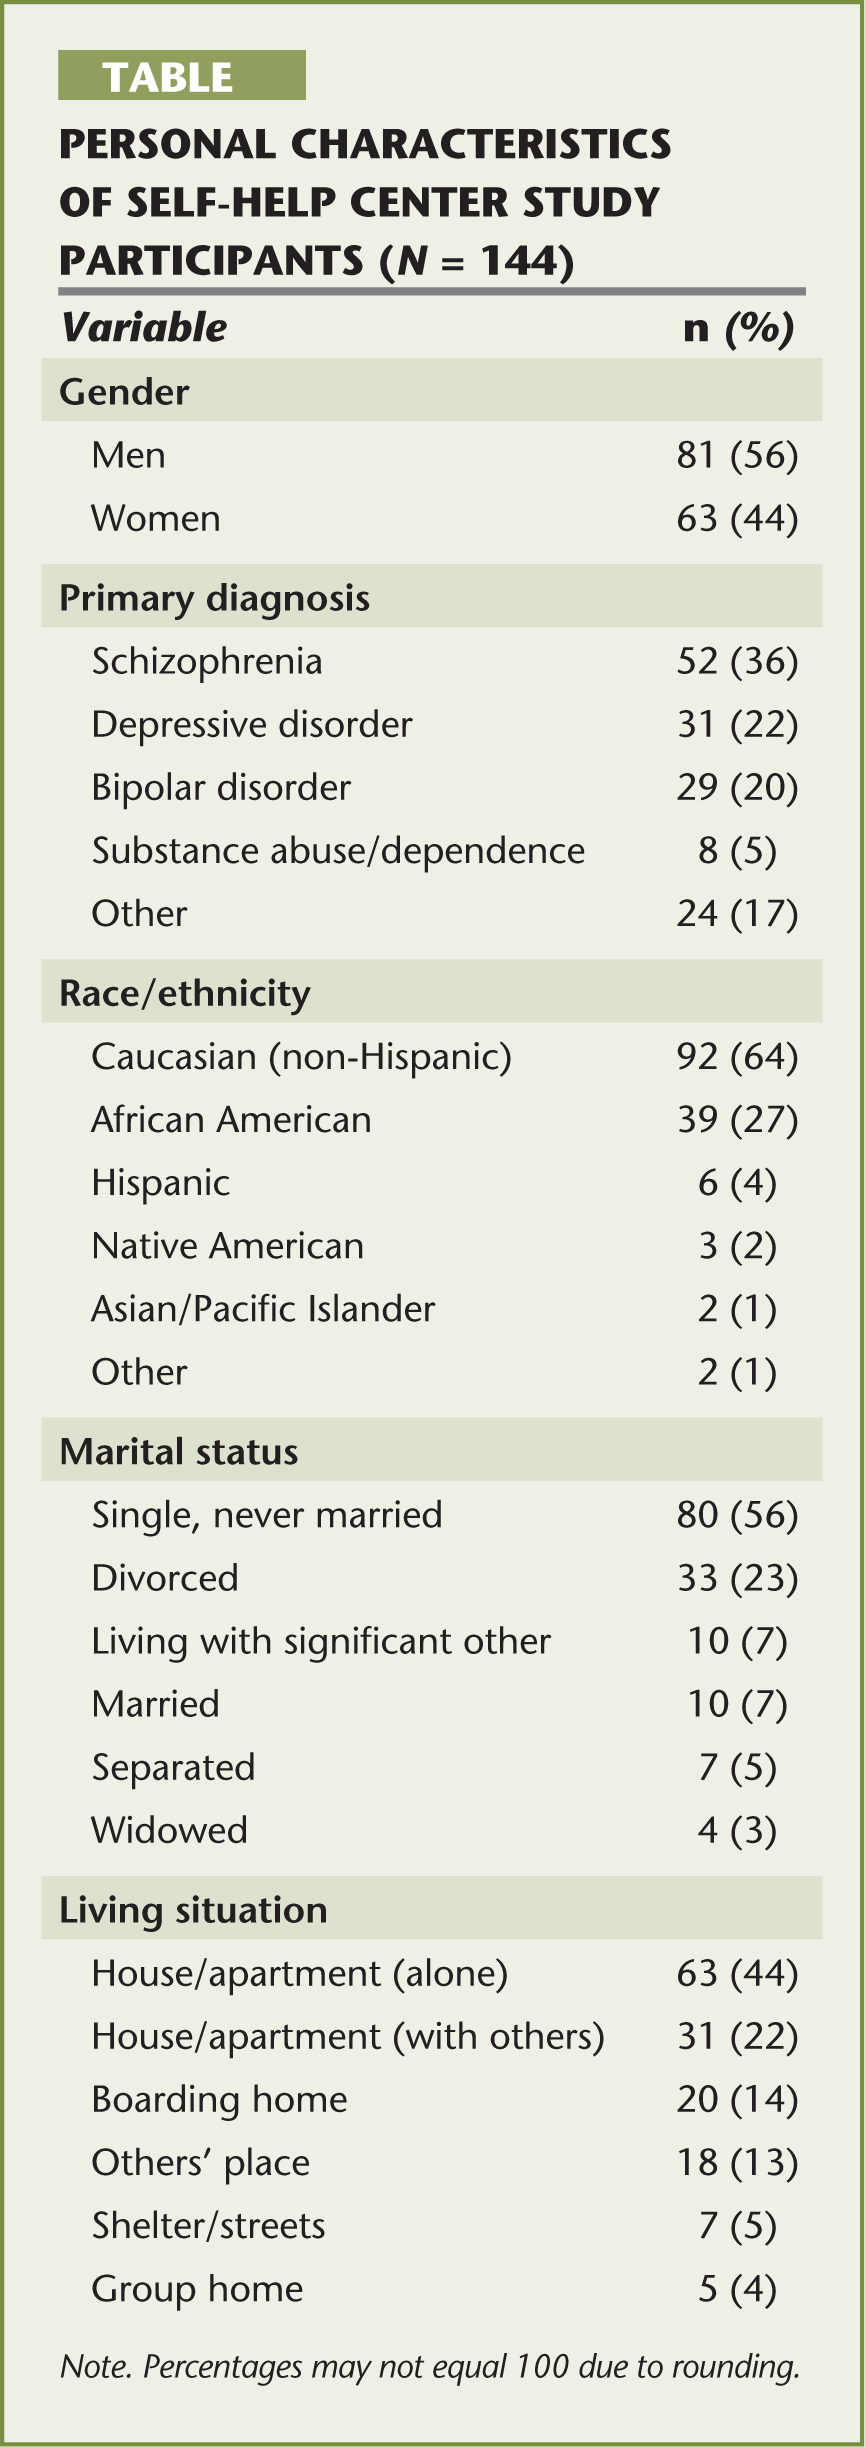 Personal Characteristics of Self-Help Center Study Participants (N = 144)